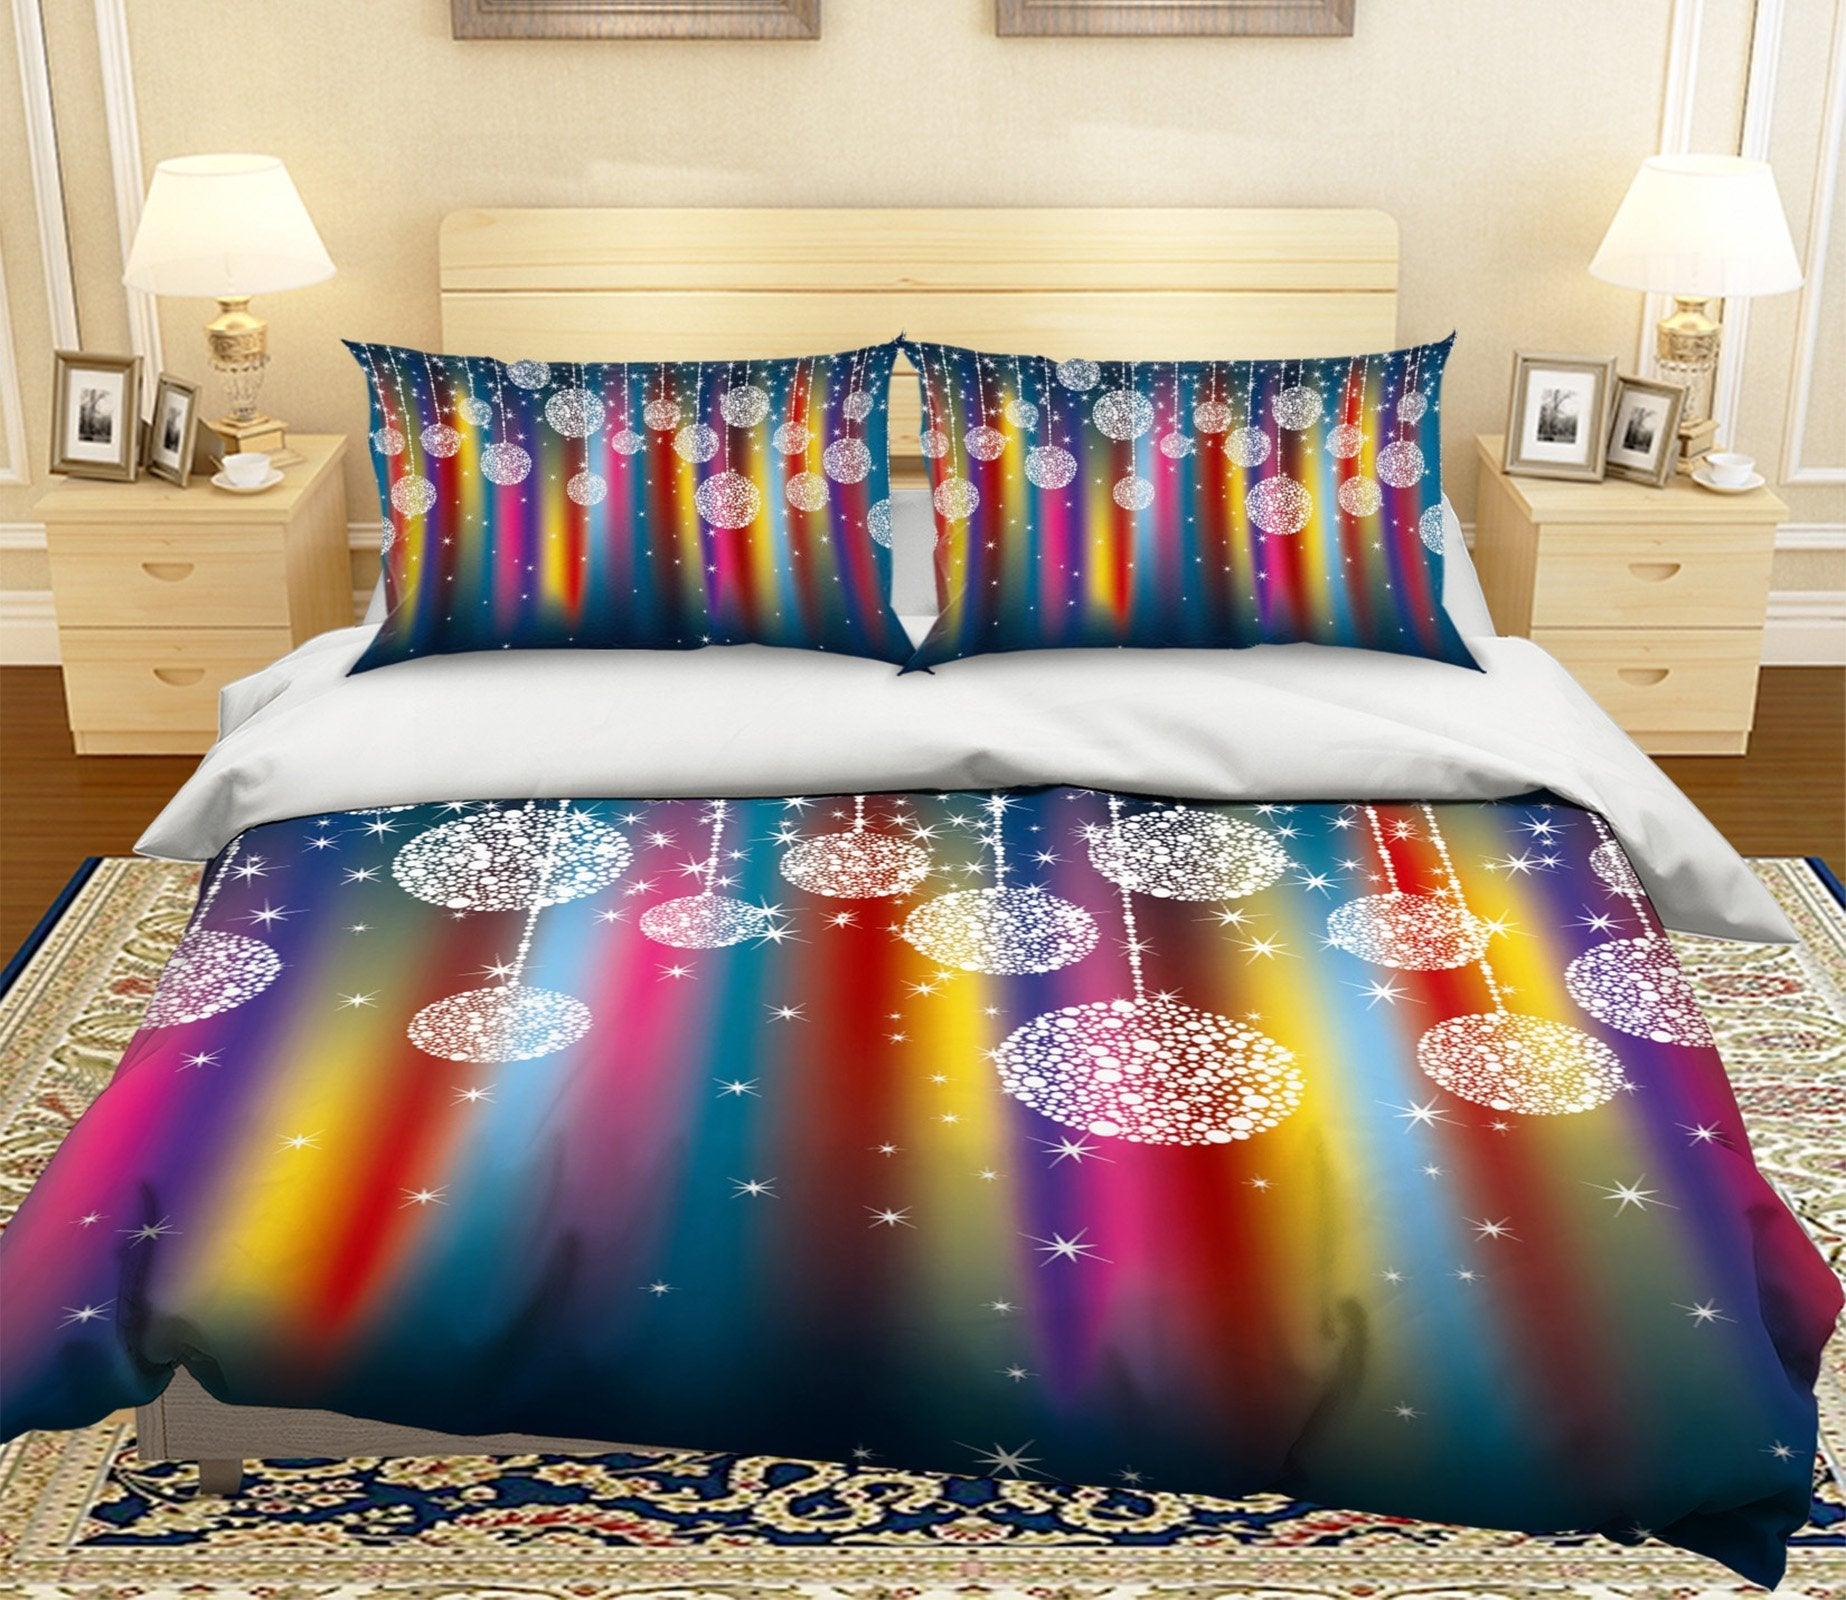 3D Colorful Crystal Ornaments 36 Bed Pillowcases Quilt Quiet Covers AJ Creativity Home